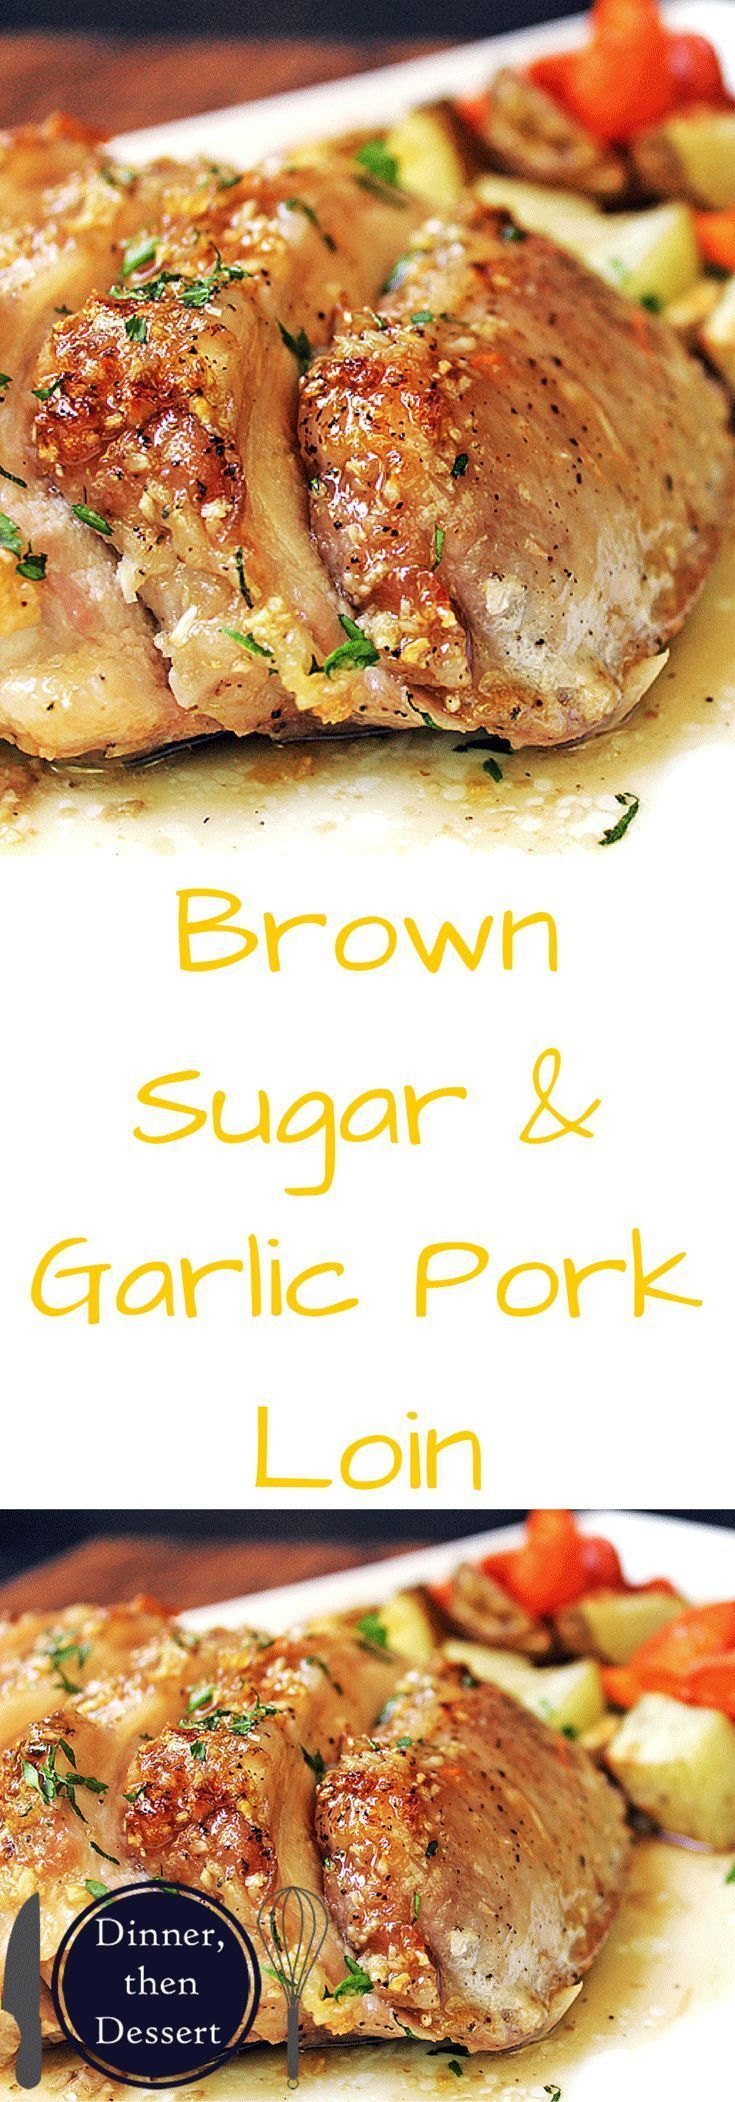 An easy meal, ready to roast in just a few minutes. Sticky and sweet with a punch of garlic, this pork loin is sure to be a huge hit with your family. Serve it up with some roasted carrots and potatoes on the side for a healthy balanced meal that is ready